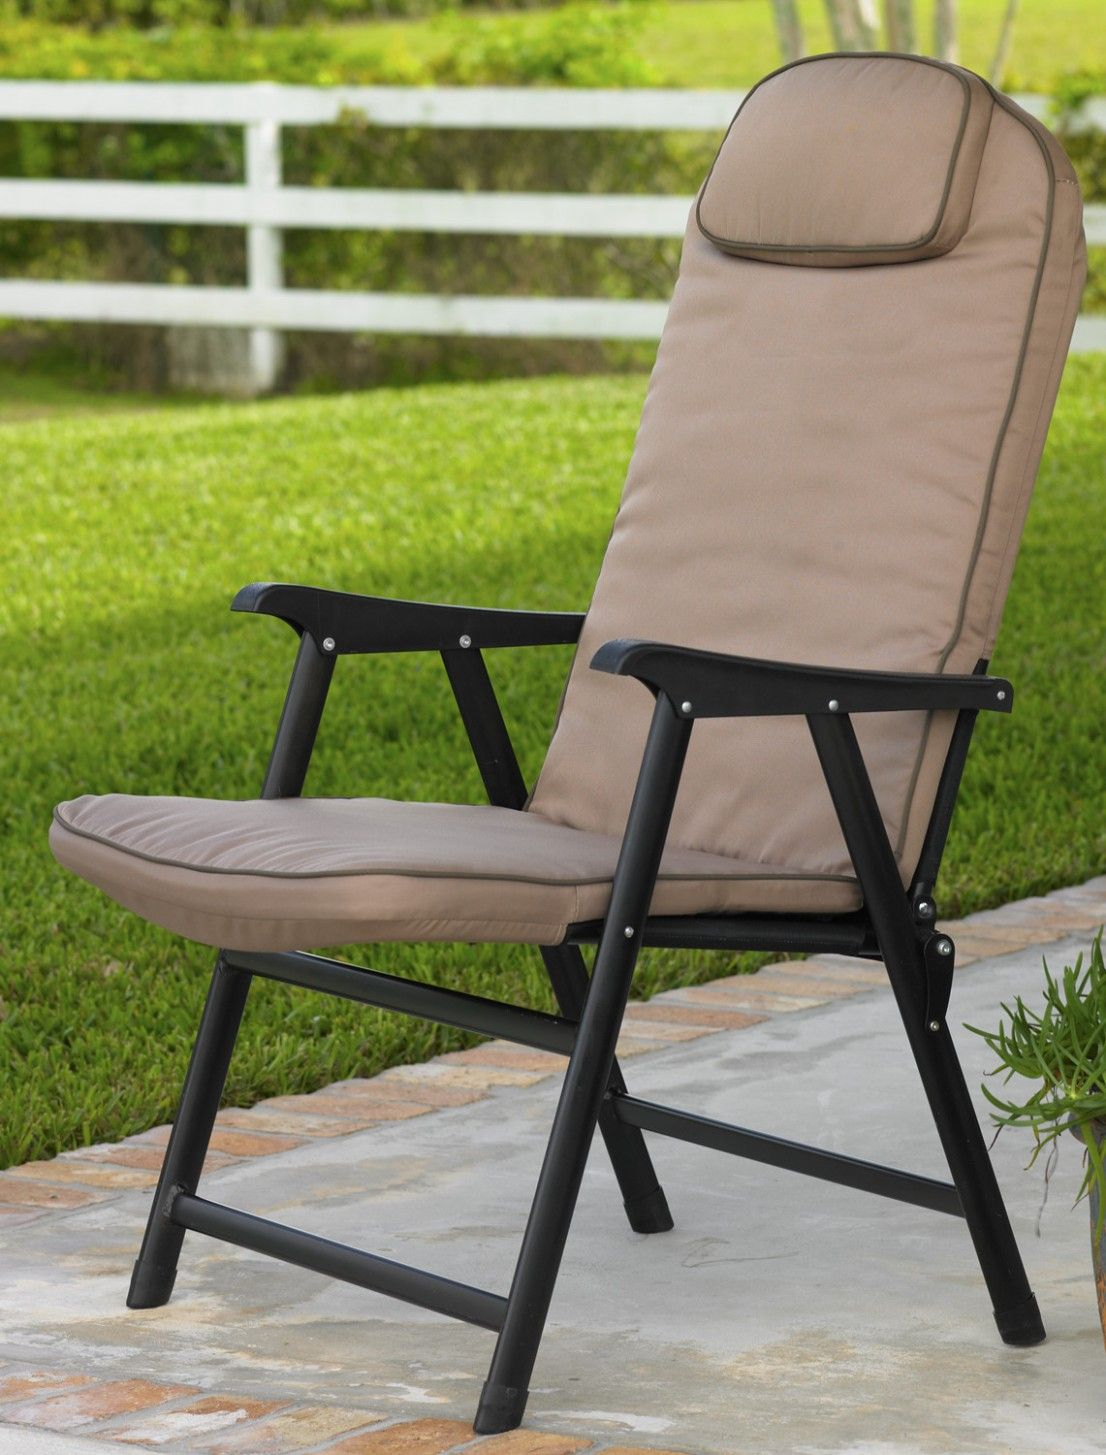 Outdoor Chair For Elderly Movie Bean Bag Ten Unexpected Ways Can Make Your Life Better